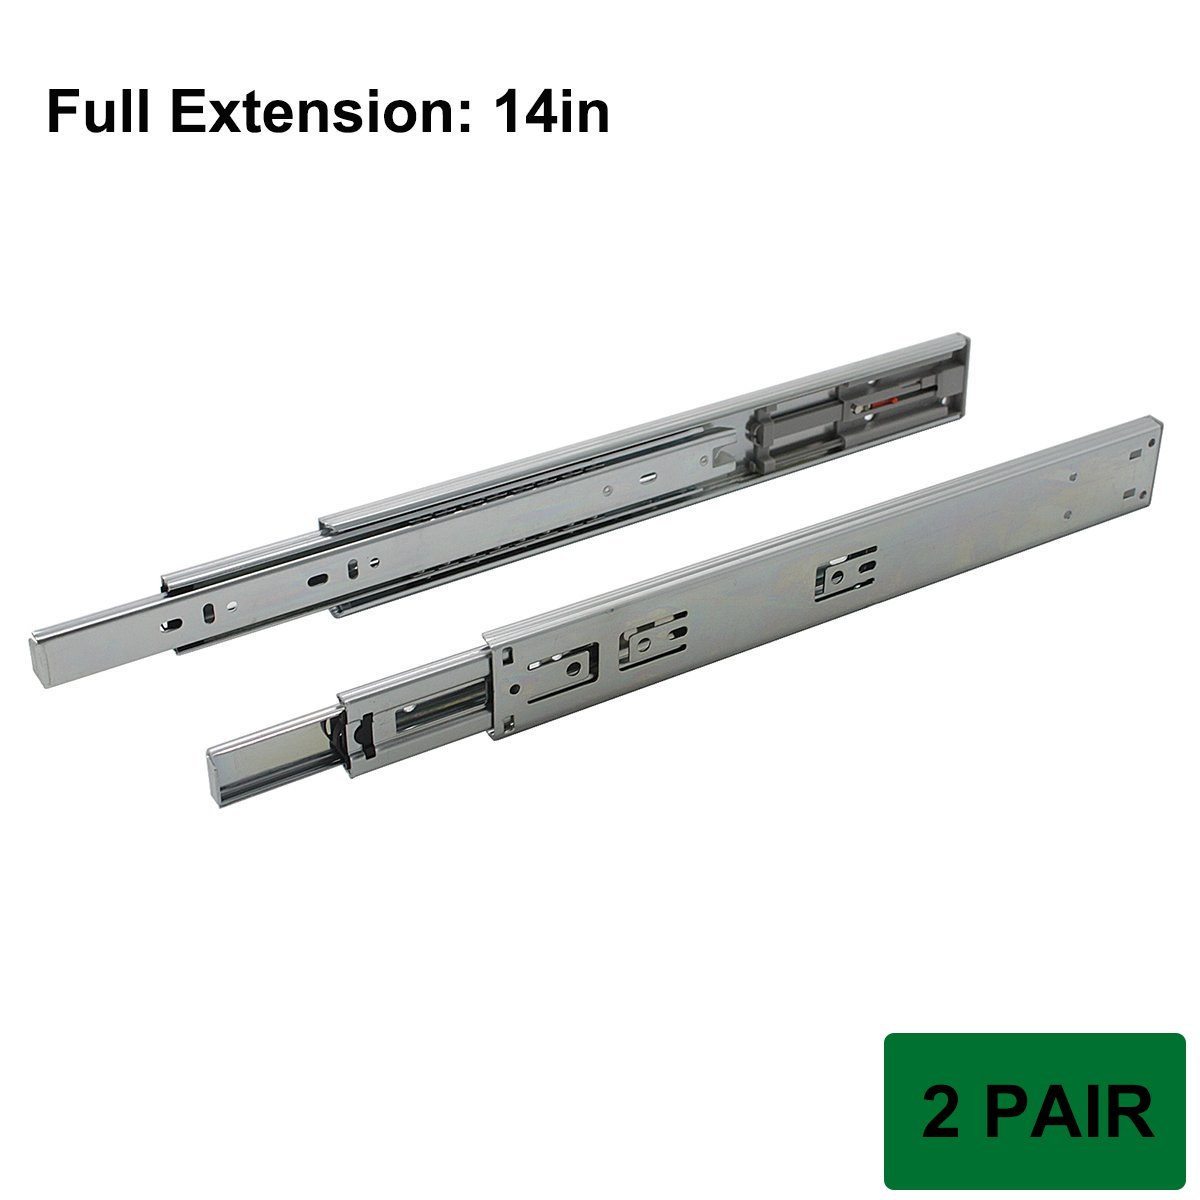 Probrico 2 Pair Push to Open Full Extension 3-fold Ball Bearing Side Mount 14 inch Furniture Slides